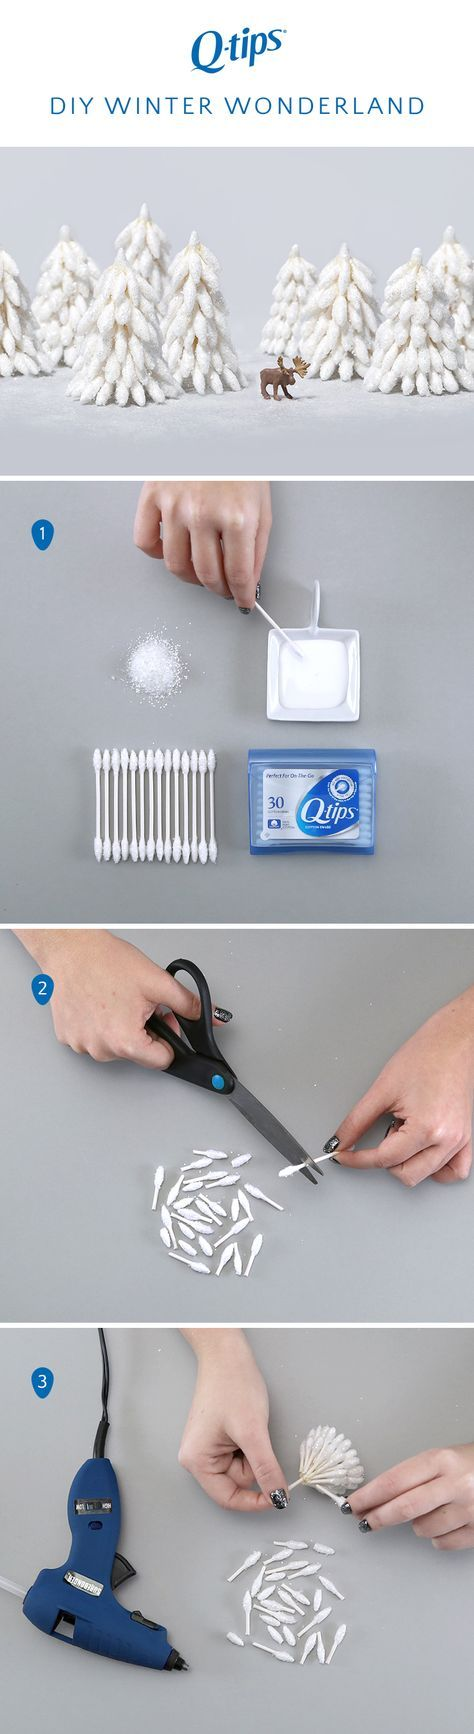 When the weather outside is frightful, create a winter wonderland inside using Q-tips! To create snowy trees, start by dipping the tapered ends of Q-tips Precision Tips in glue and glitter. Lay out on wax paper to allow them to dry. Then cut the swabs in different lengths for the parts of the trees. Glue the cut ends onto a Q-tips cotton swab, starting with the longer ones at the bottom and the shorter ones at the top. Arrange with fun miniatures for a wintery forest in the comfort of your…